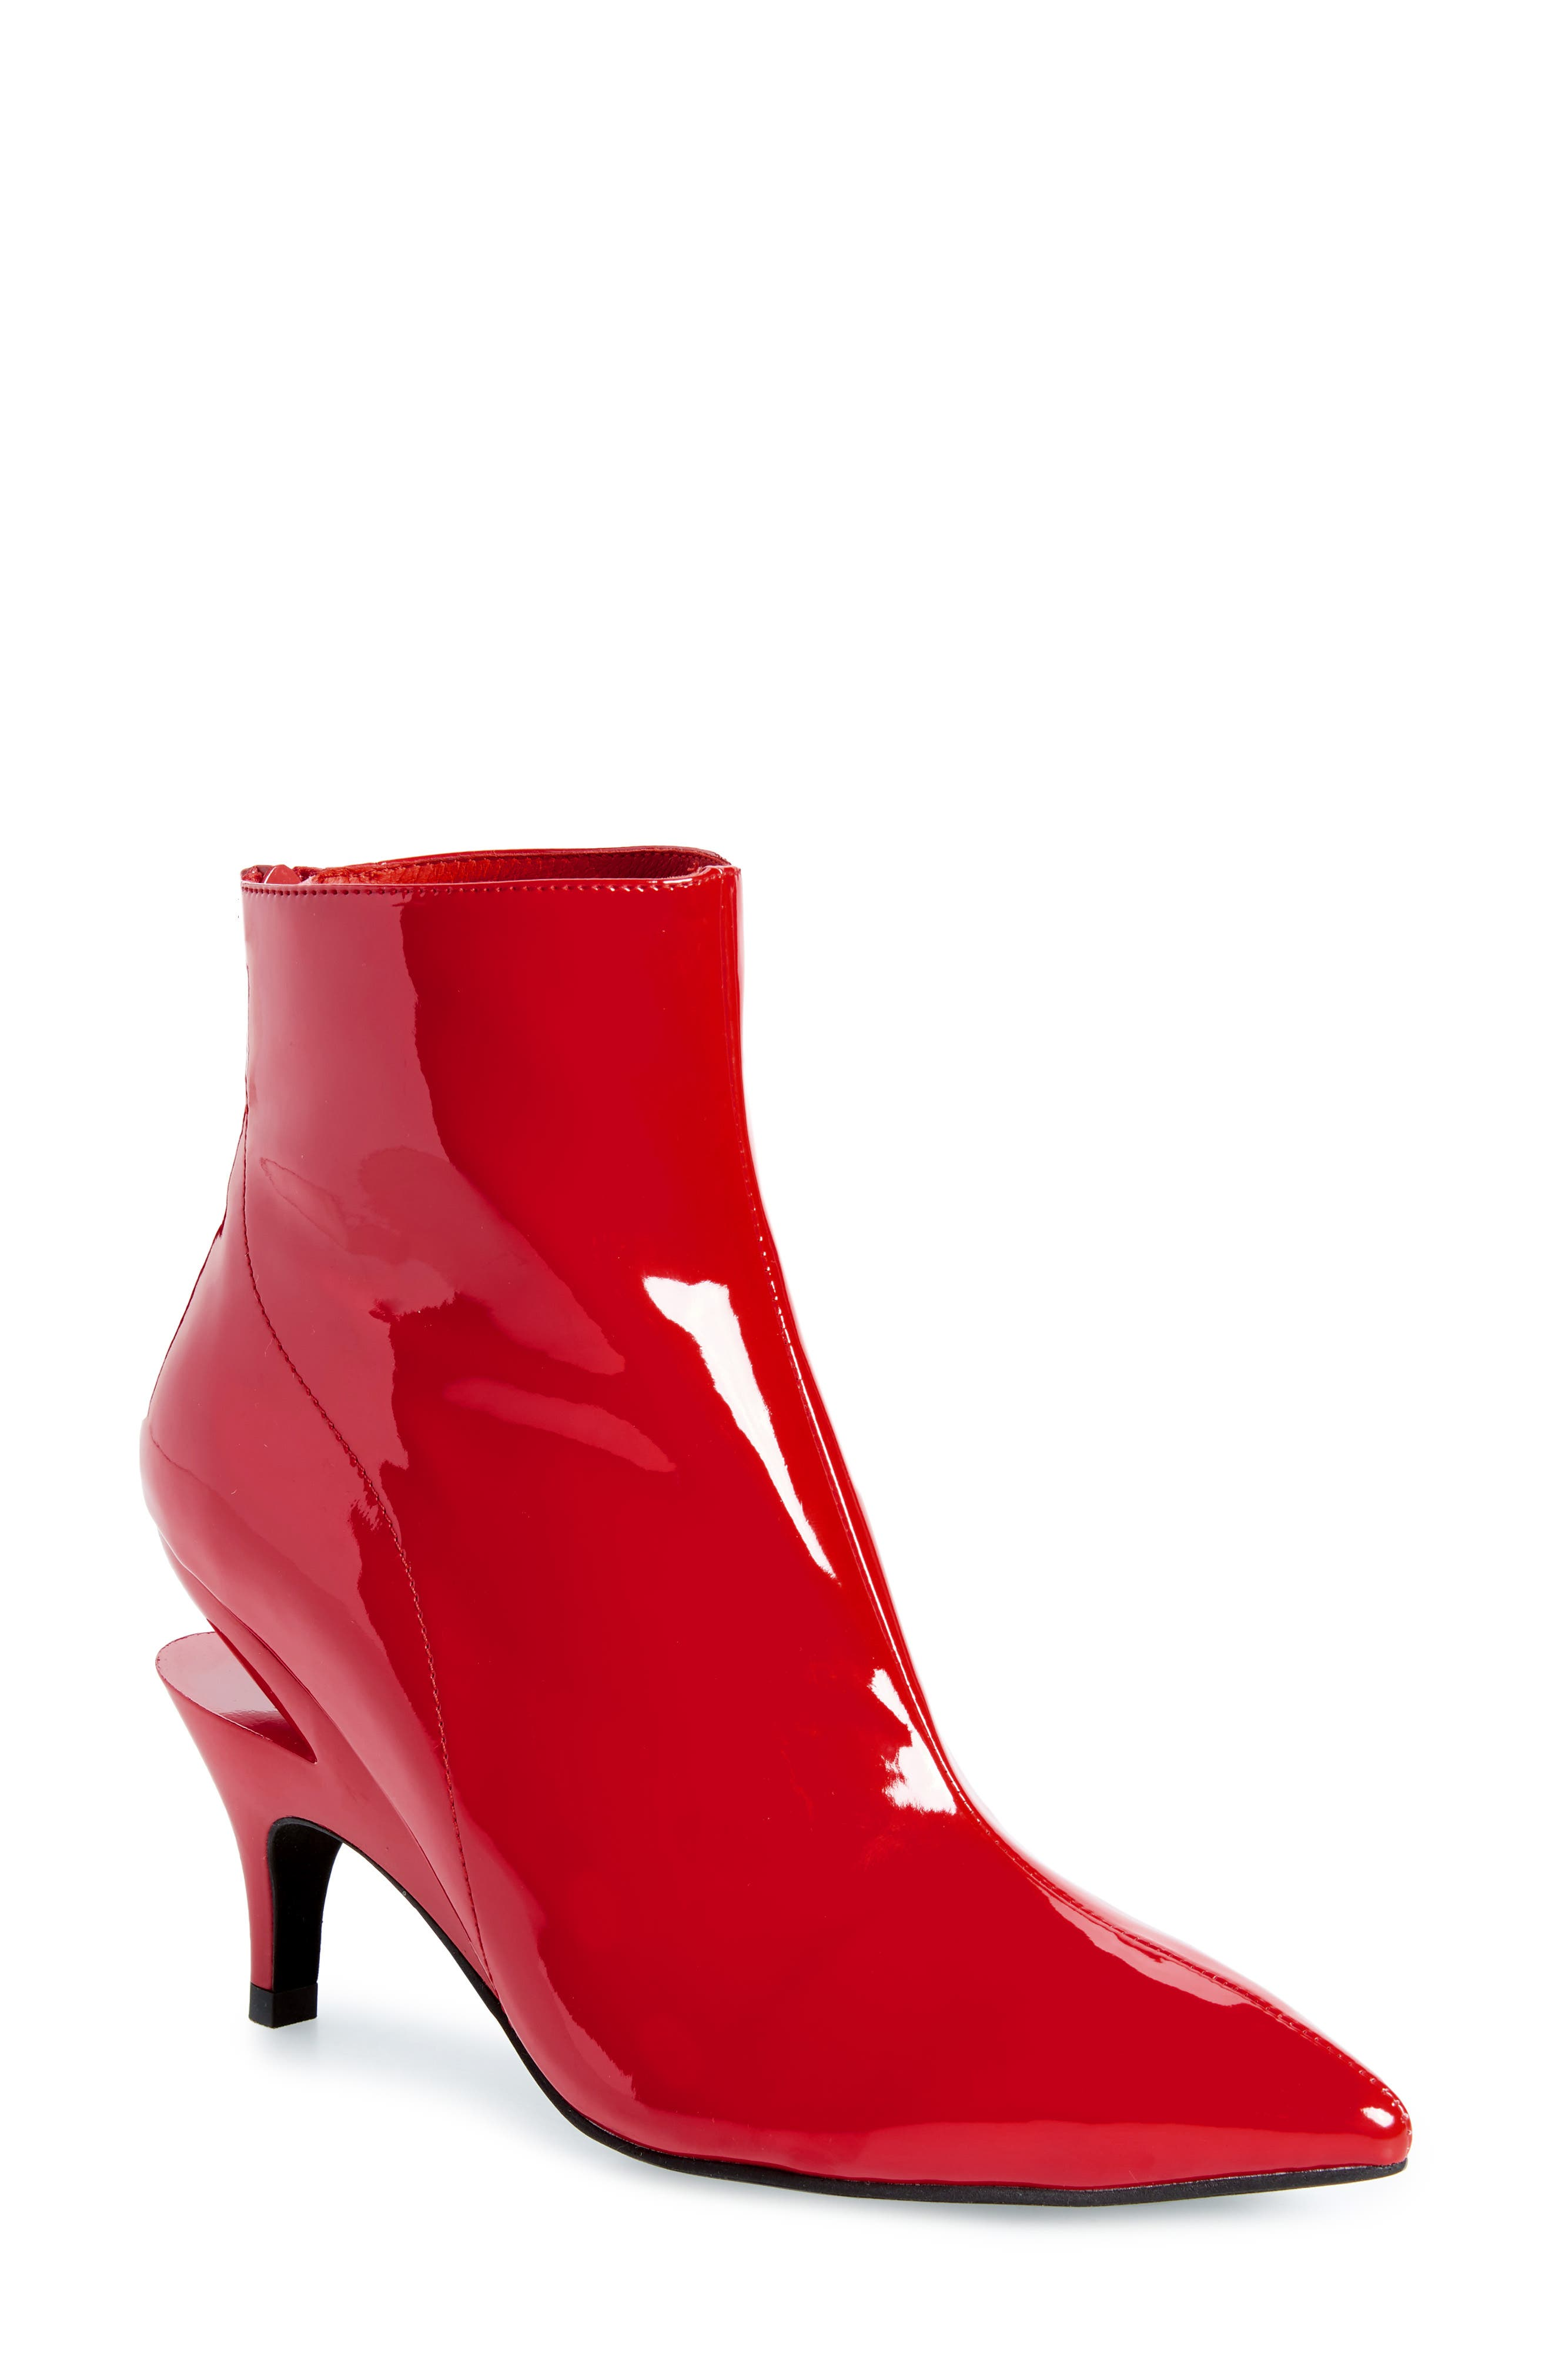 Jeffrey Campbell Museum Bootie, Red